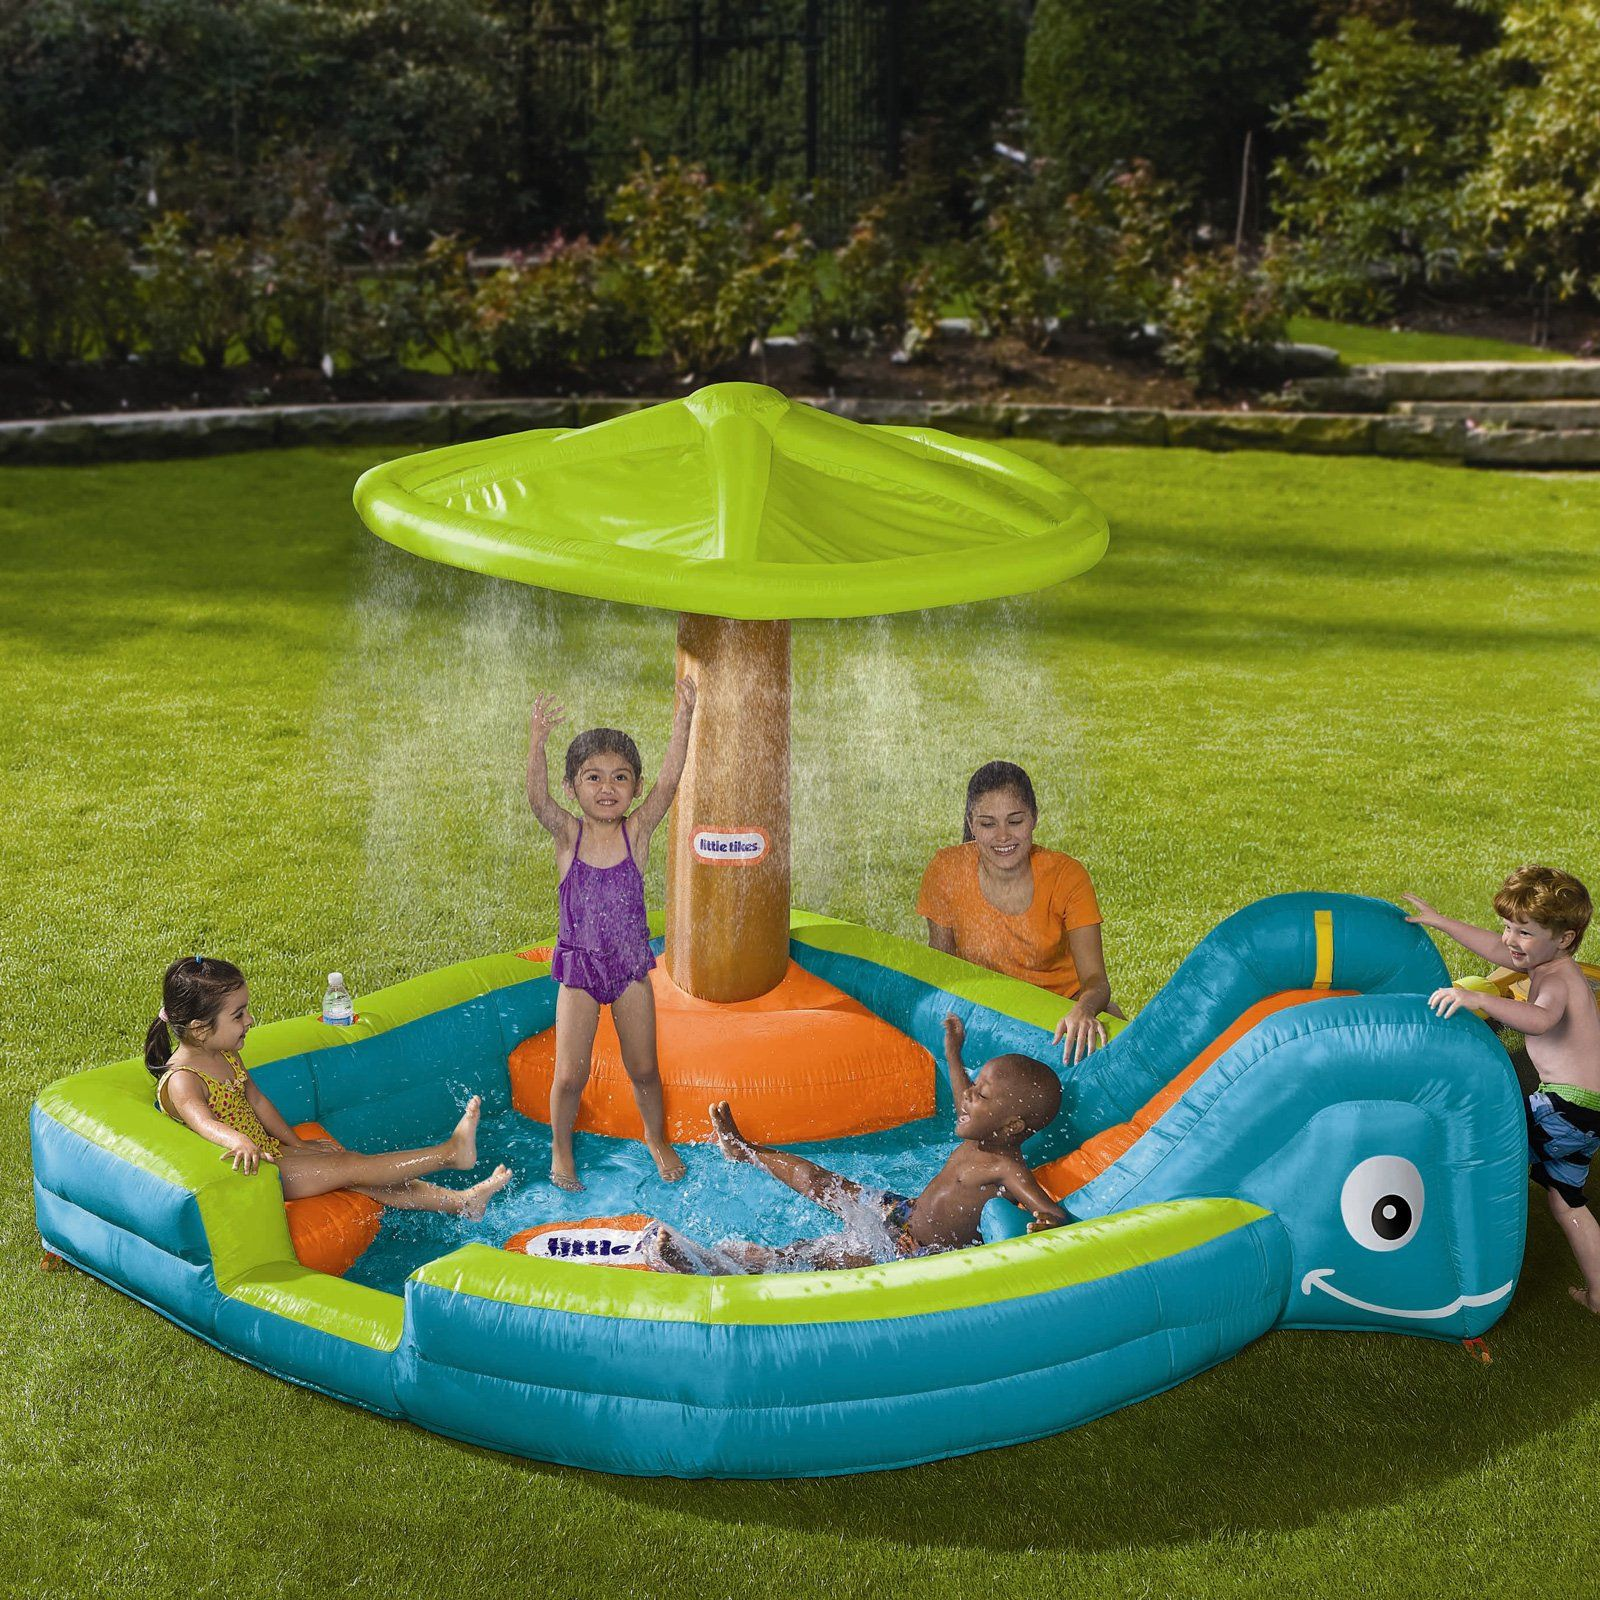 February Suggestions Kiddie Pool Summer Toys Tikes Toys